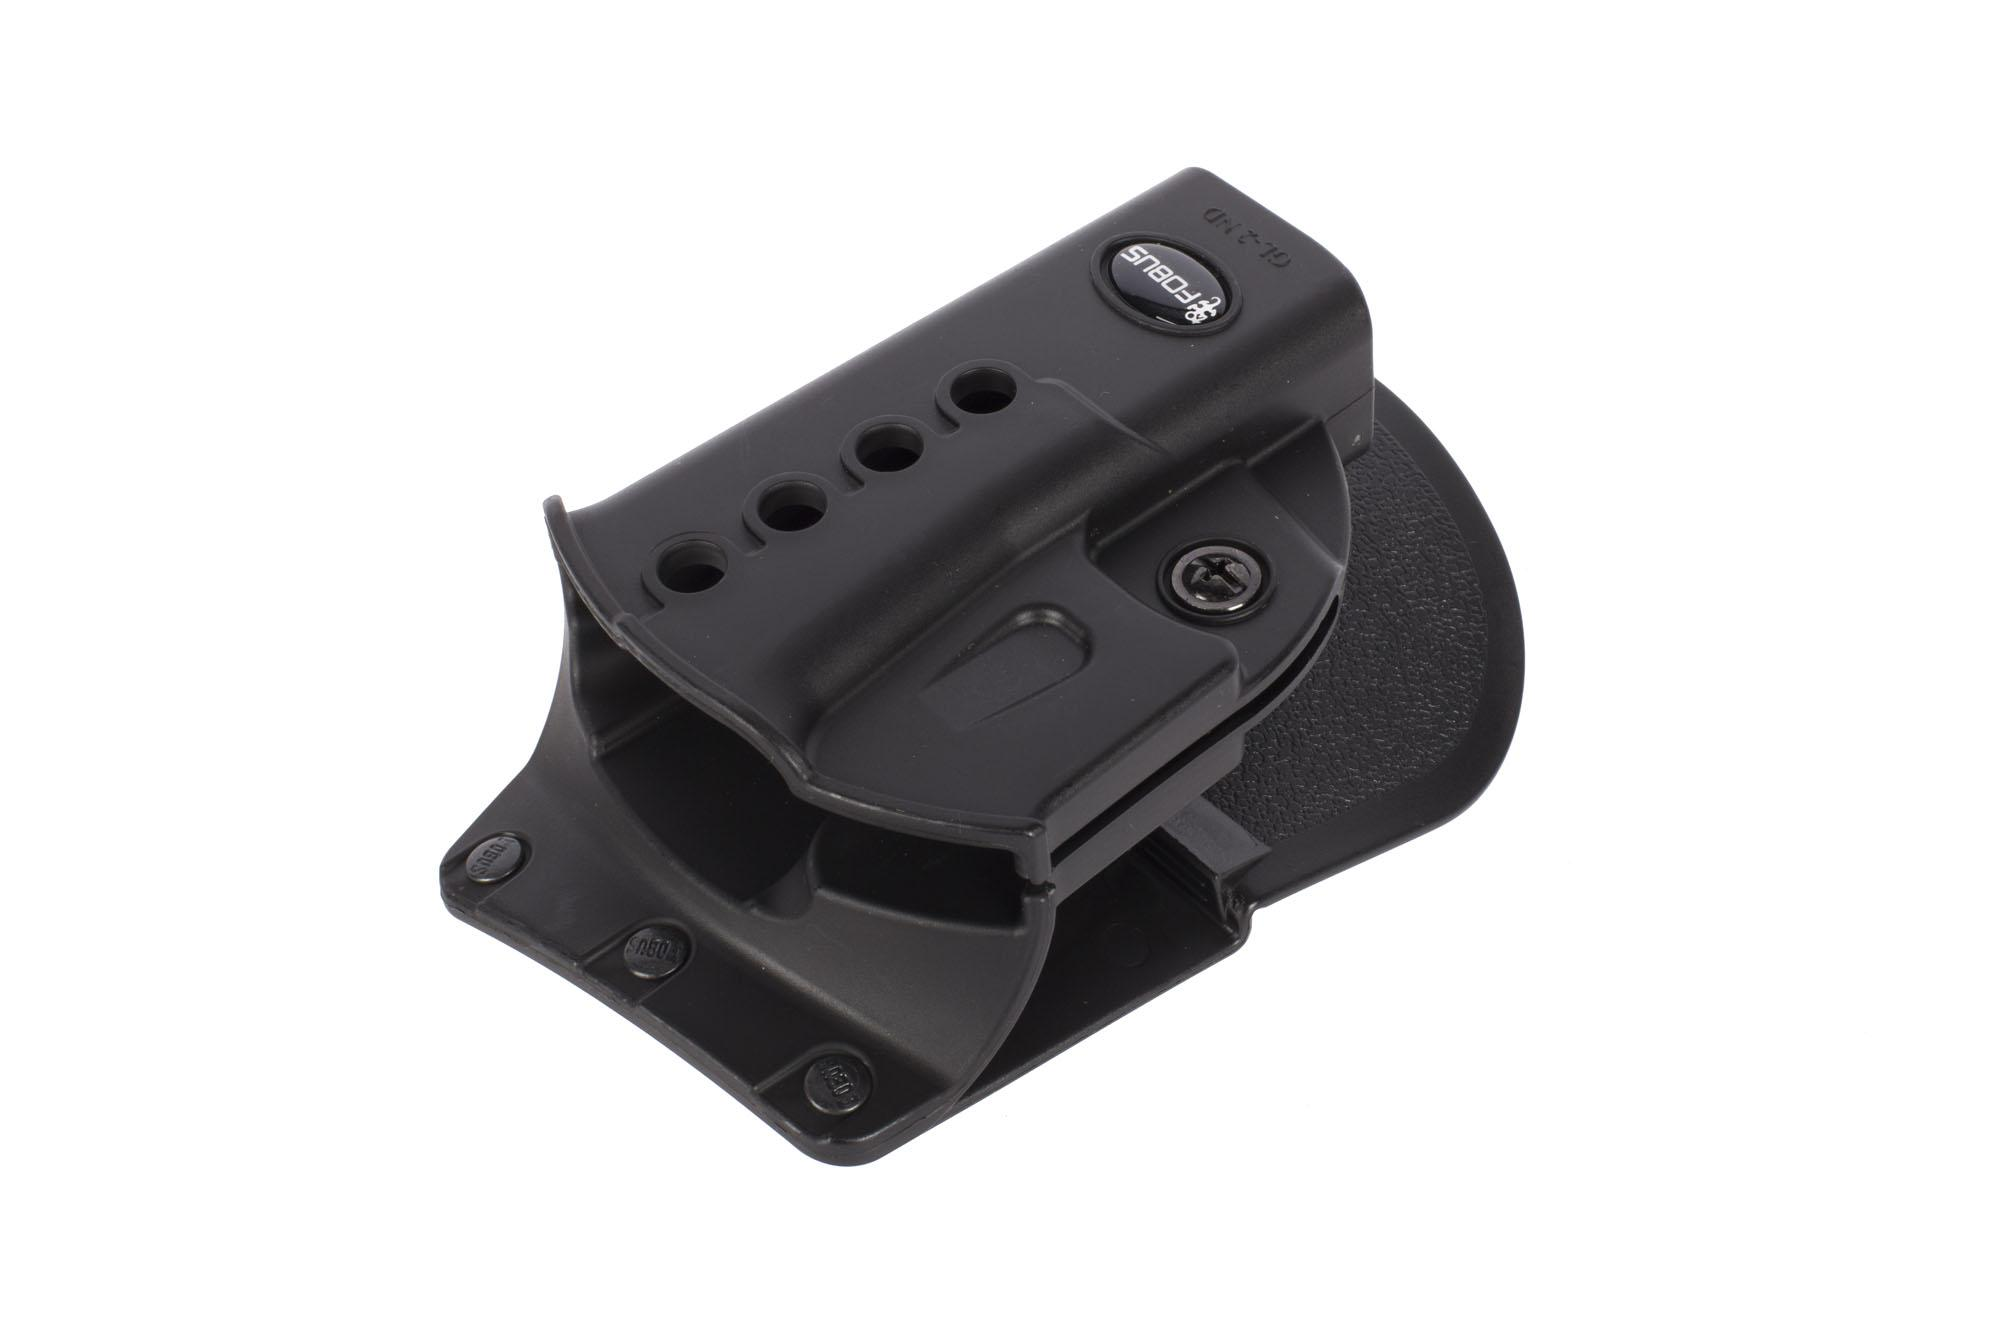 Fobus Evolution Paddle Holster - GLOCK 17/19/22/23/31/32/34/35 - Right Hand - Black